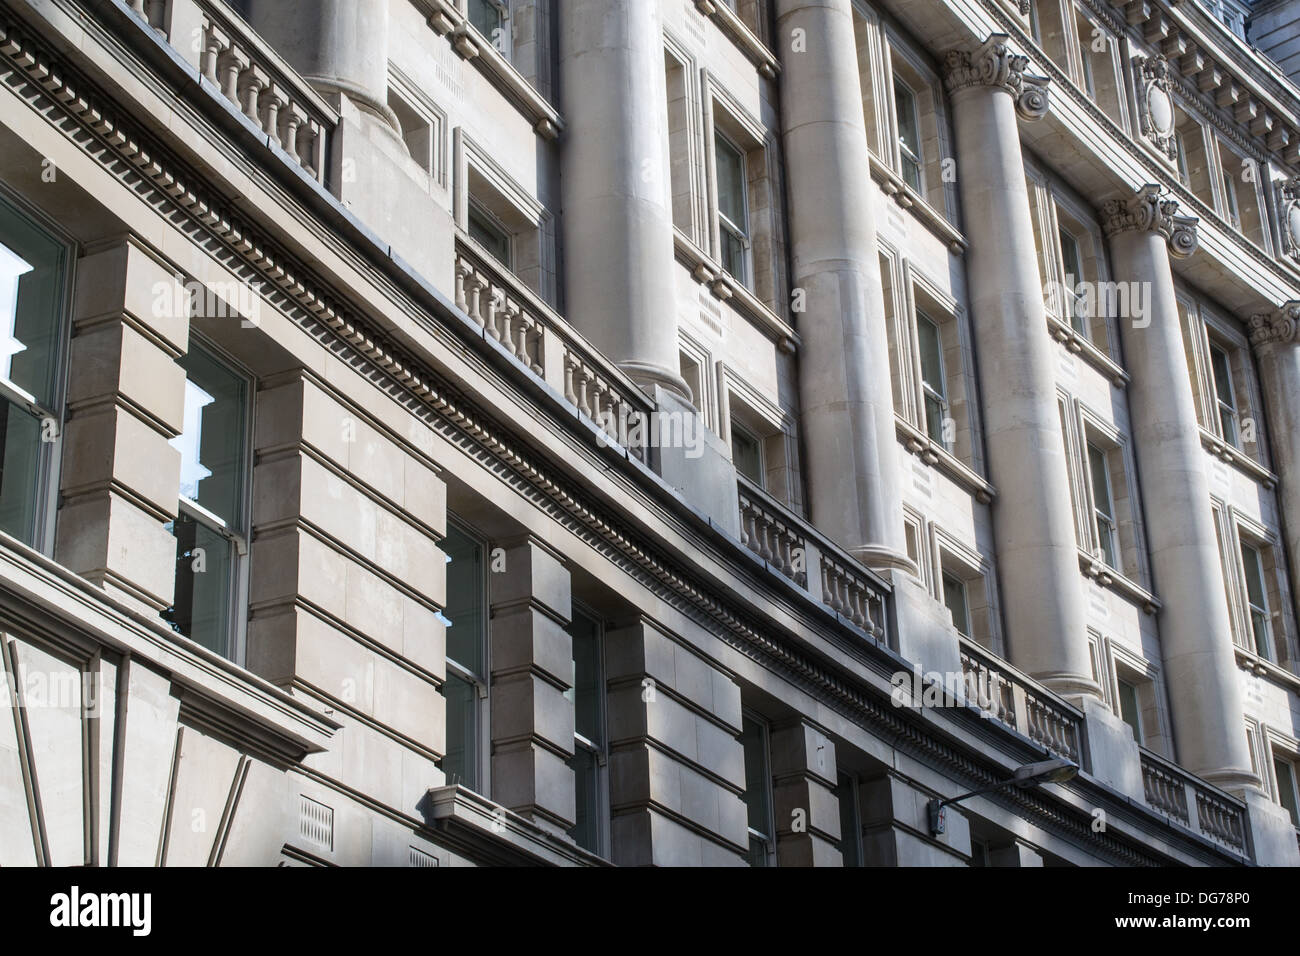 A close up of the architectural features of a classical building in Finsbury Circus, London, UK - Stock Image